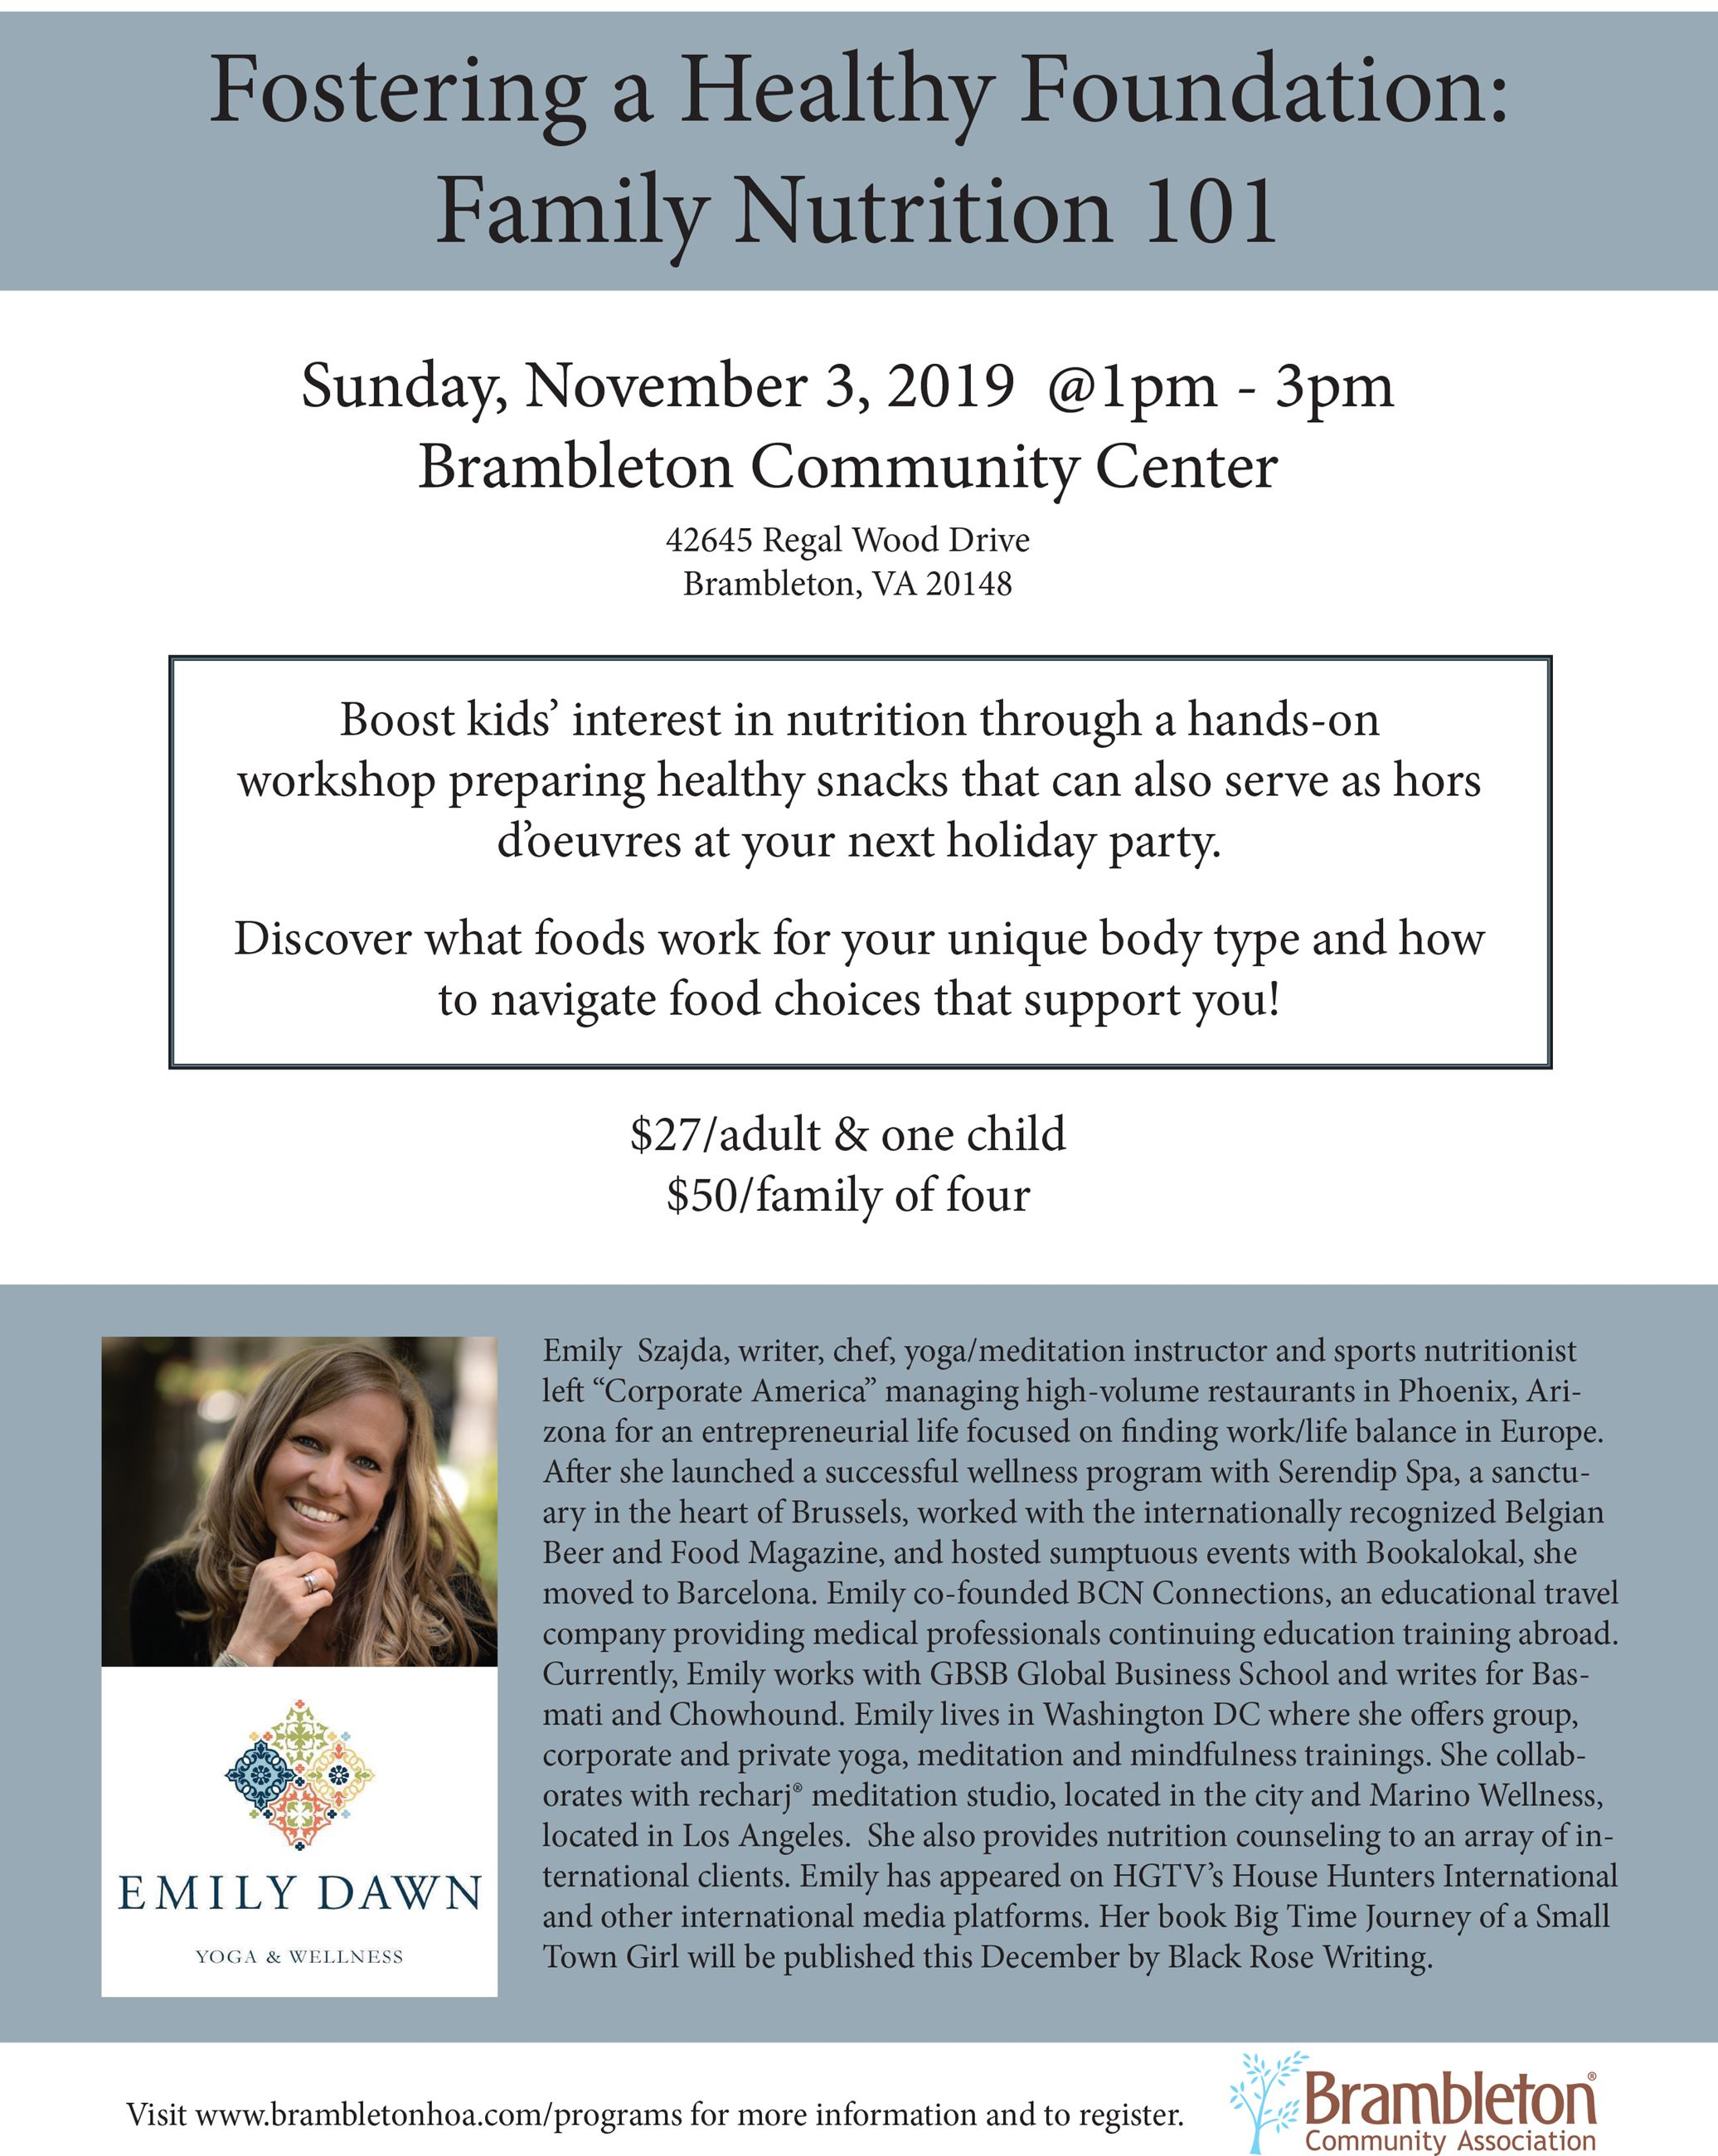 Family Nutrition Workshop Flyer - Emily Dawn